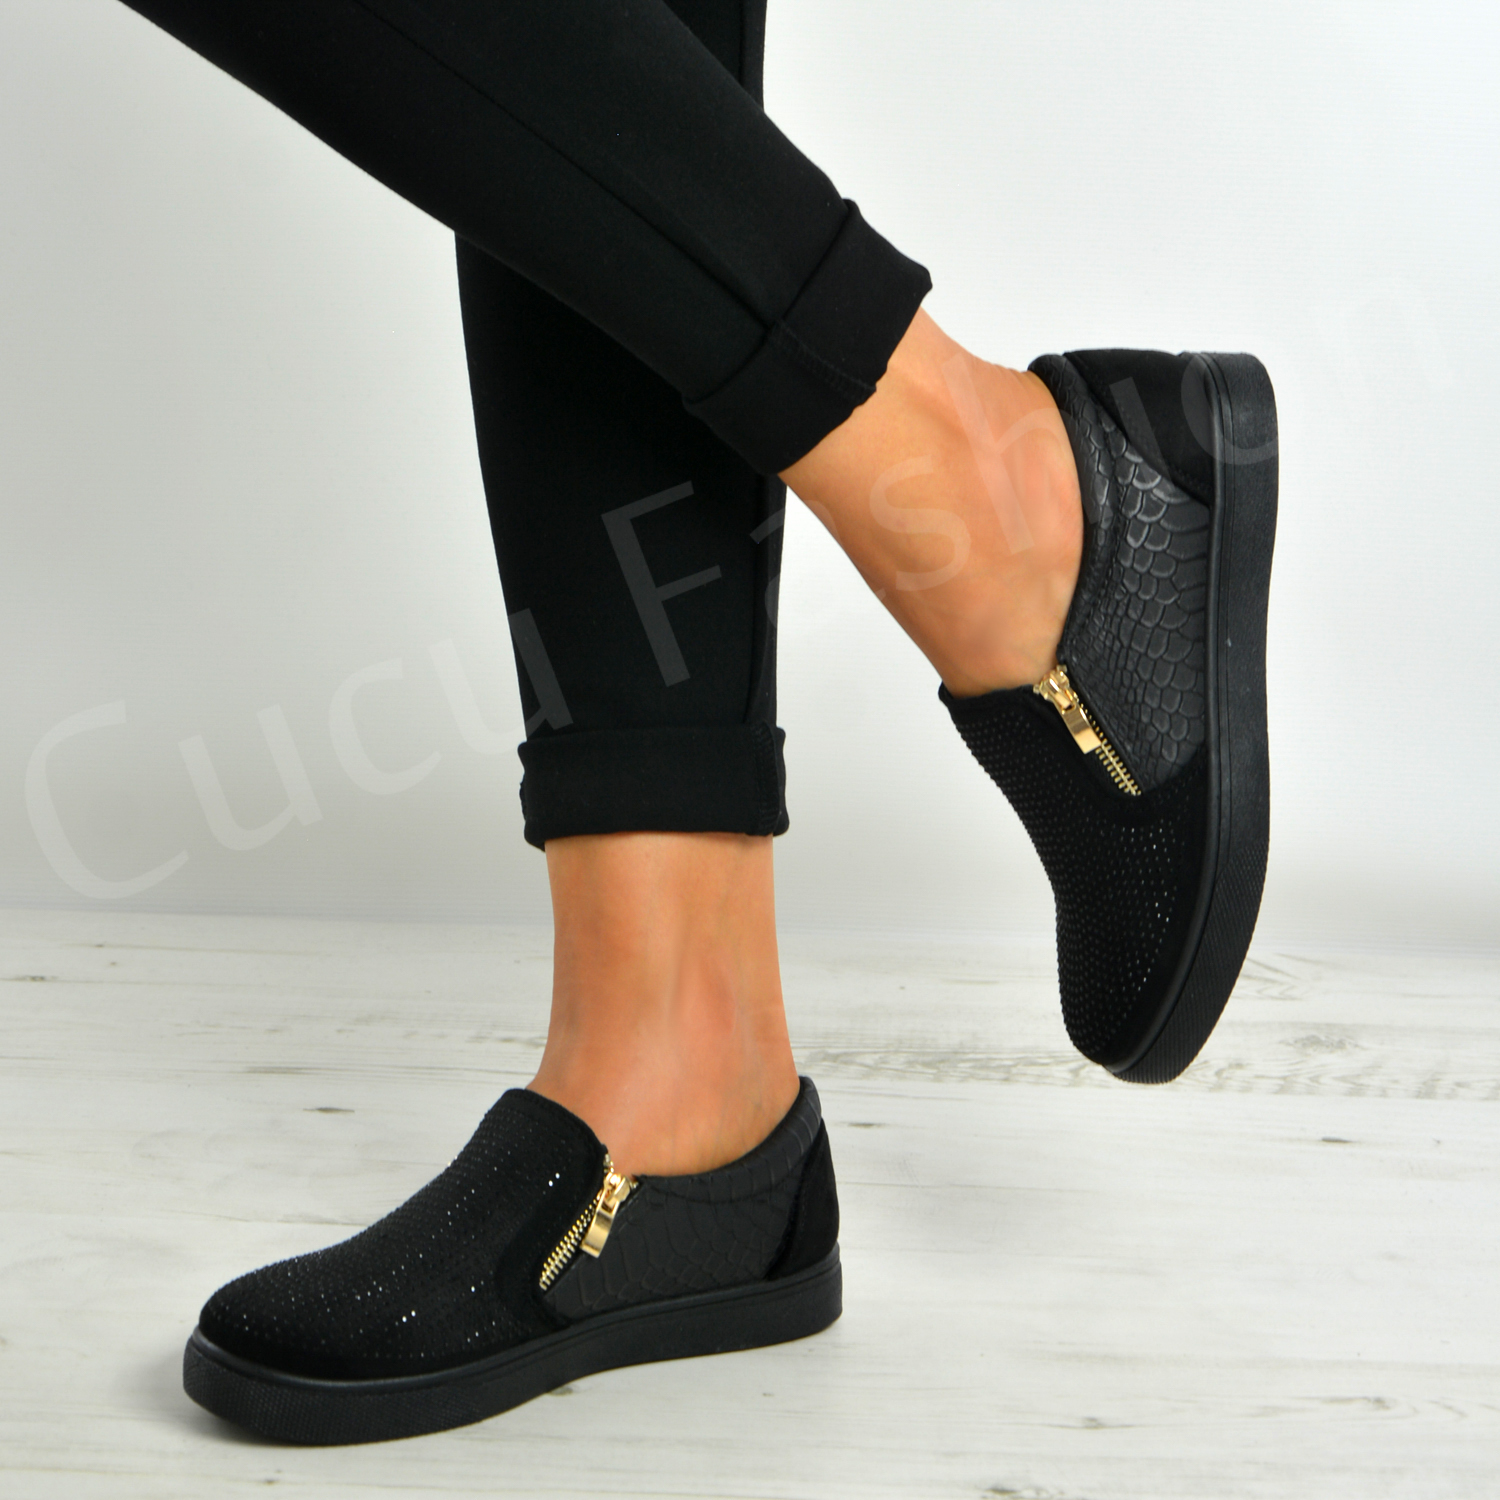 Studded Flat Trainers Zip Shoes Size Uk